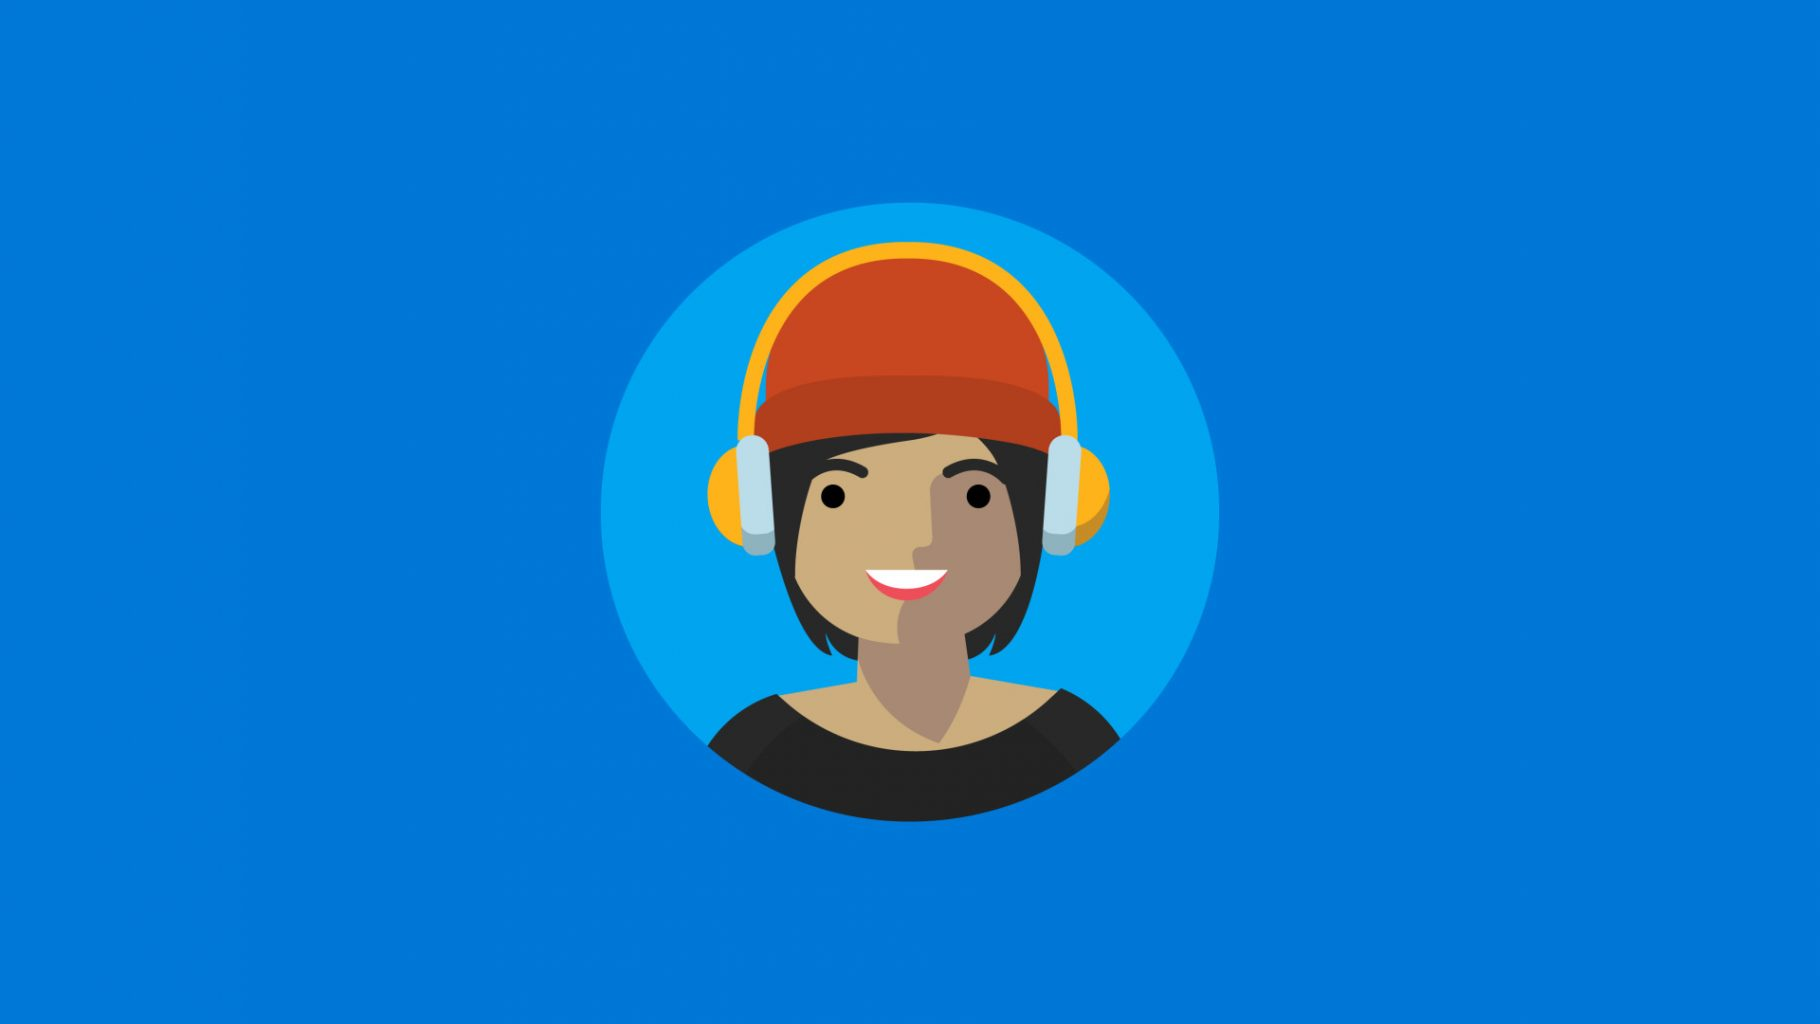 An illustration of a girl with headphones